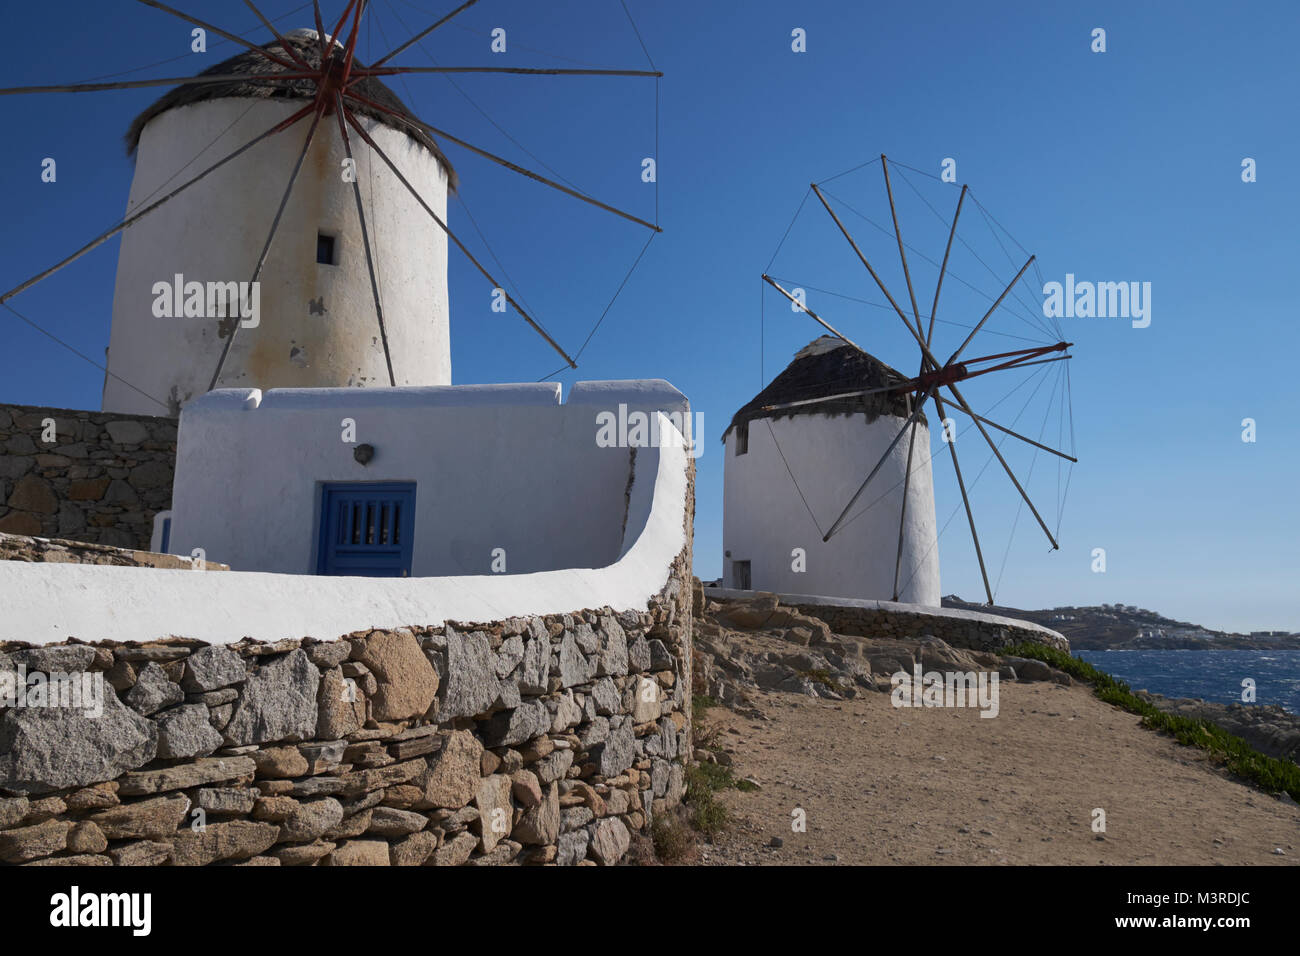 Iconic windmills overlooking the town of Mykonos (Chora), Cyclades Islands, Aegean Sea, Greece. Stock Photo